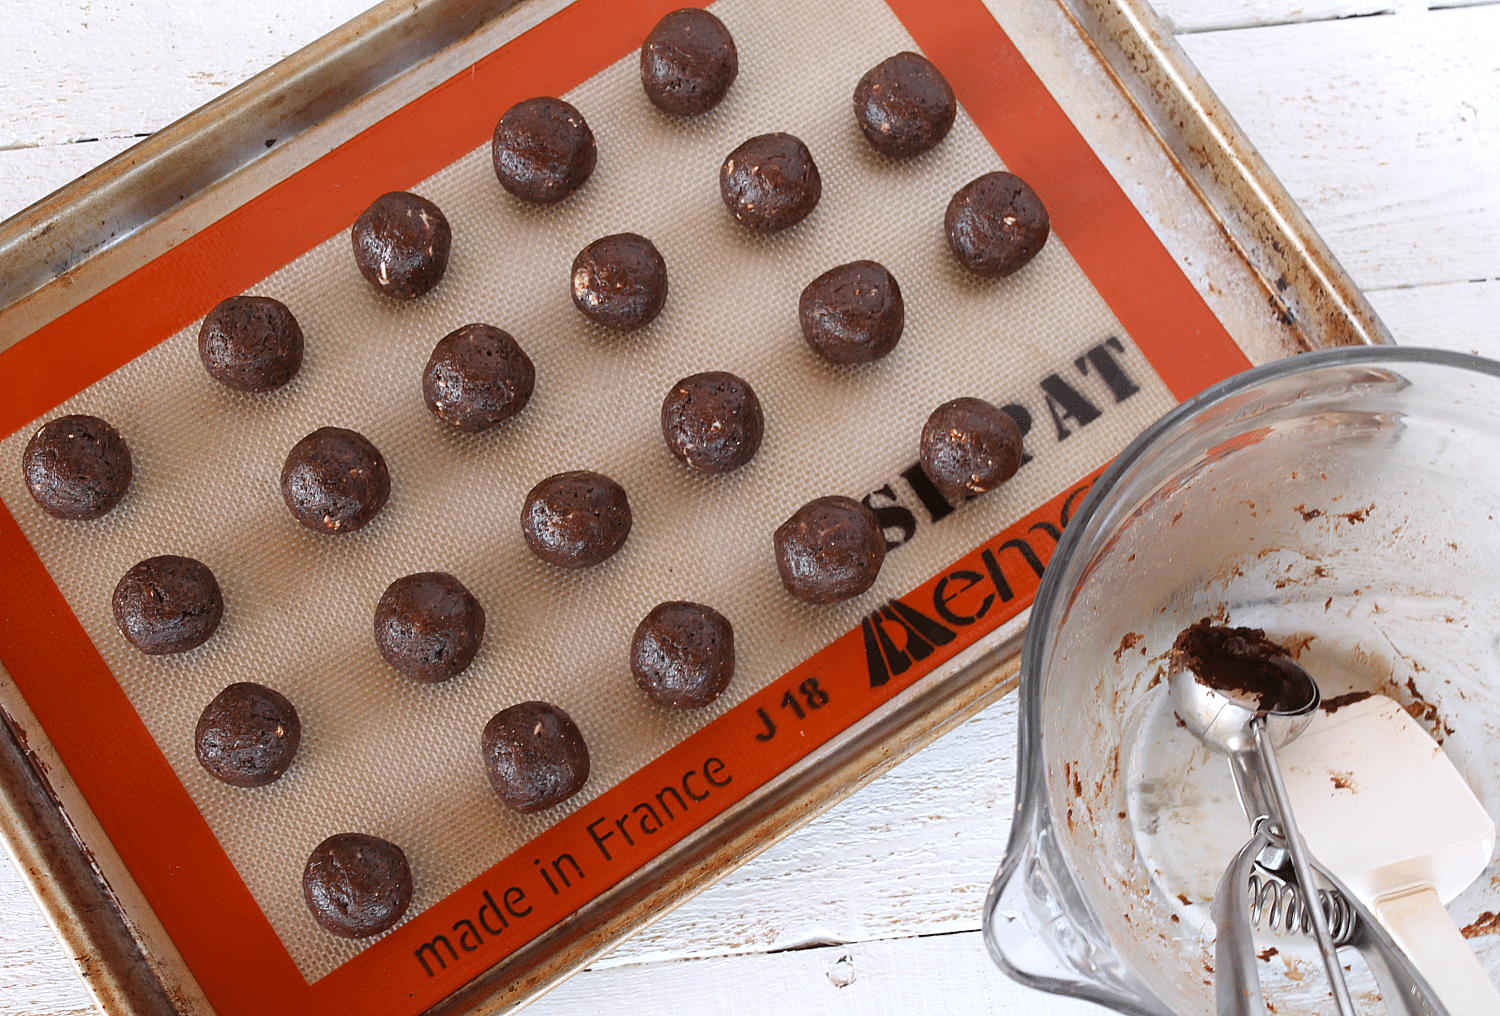 Roll mixture into balls and place on a baking sheet lined with a Silpat liner.